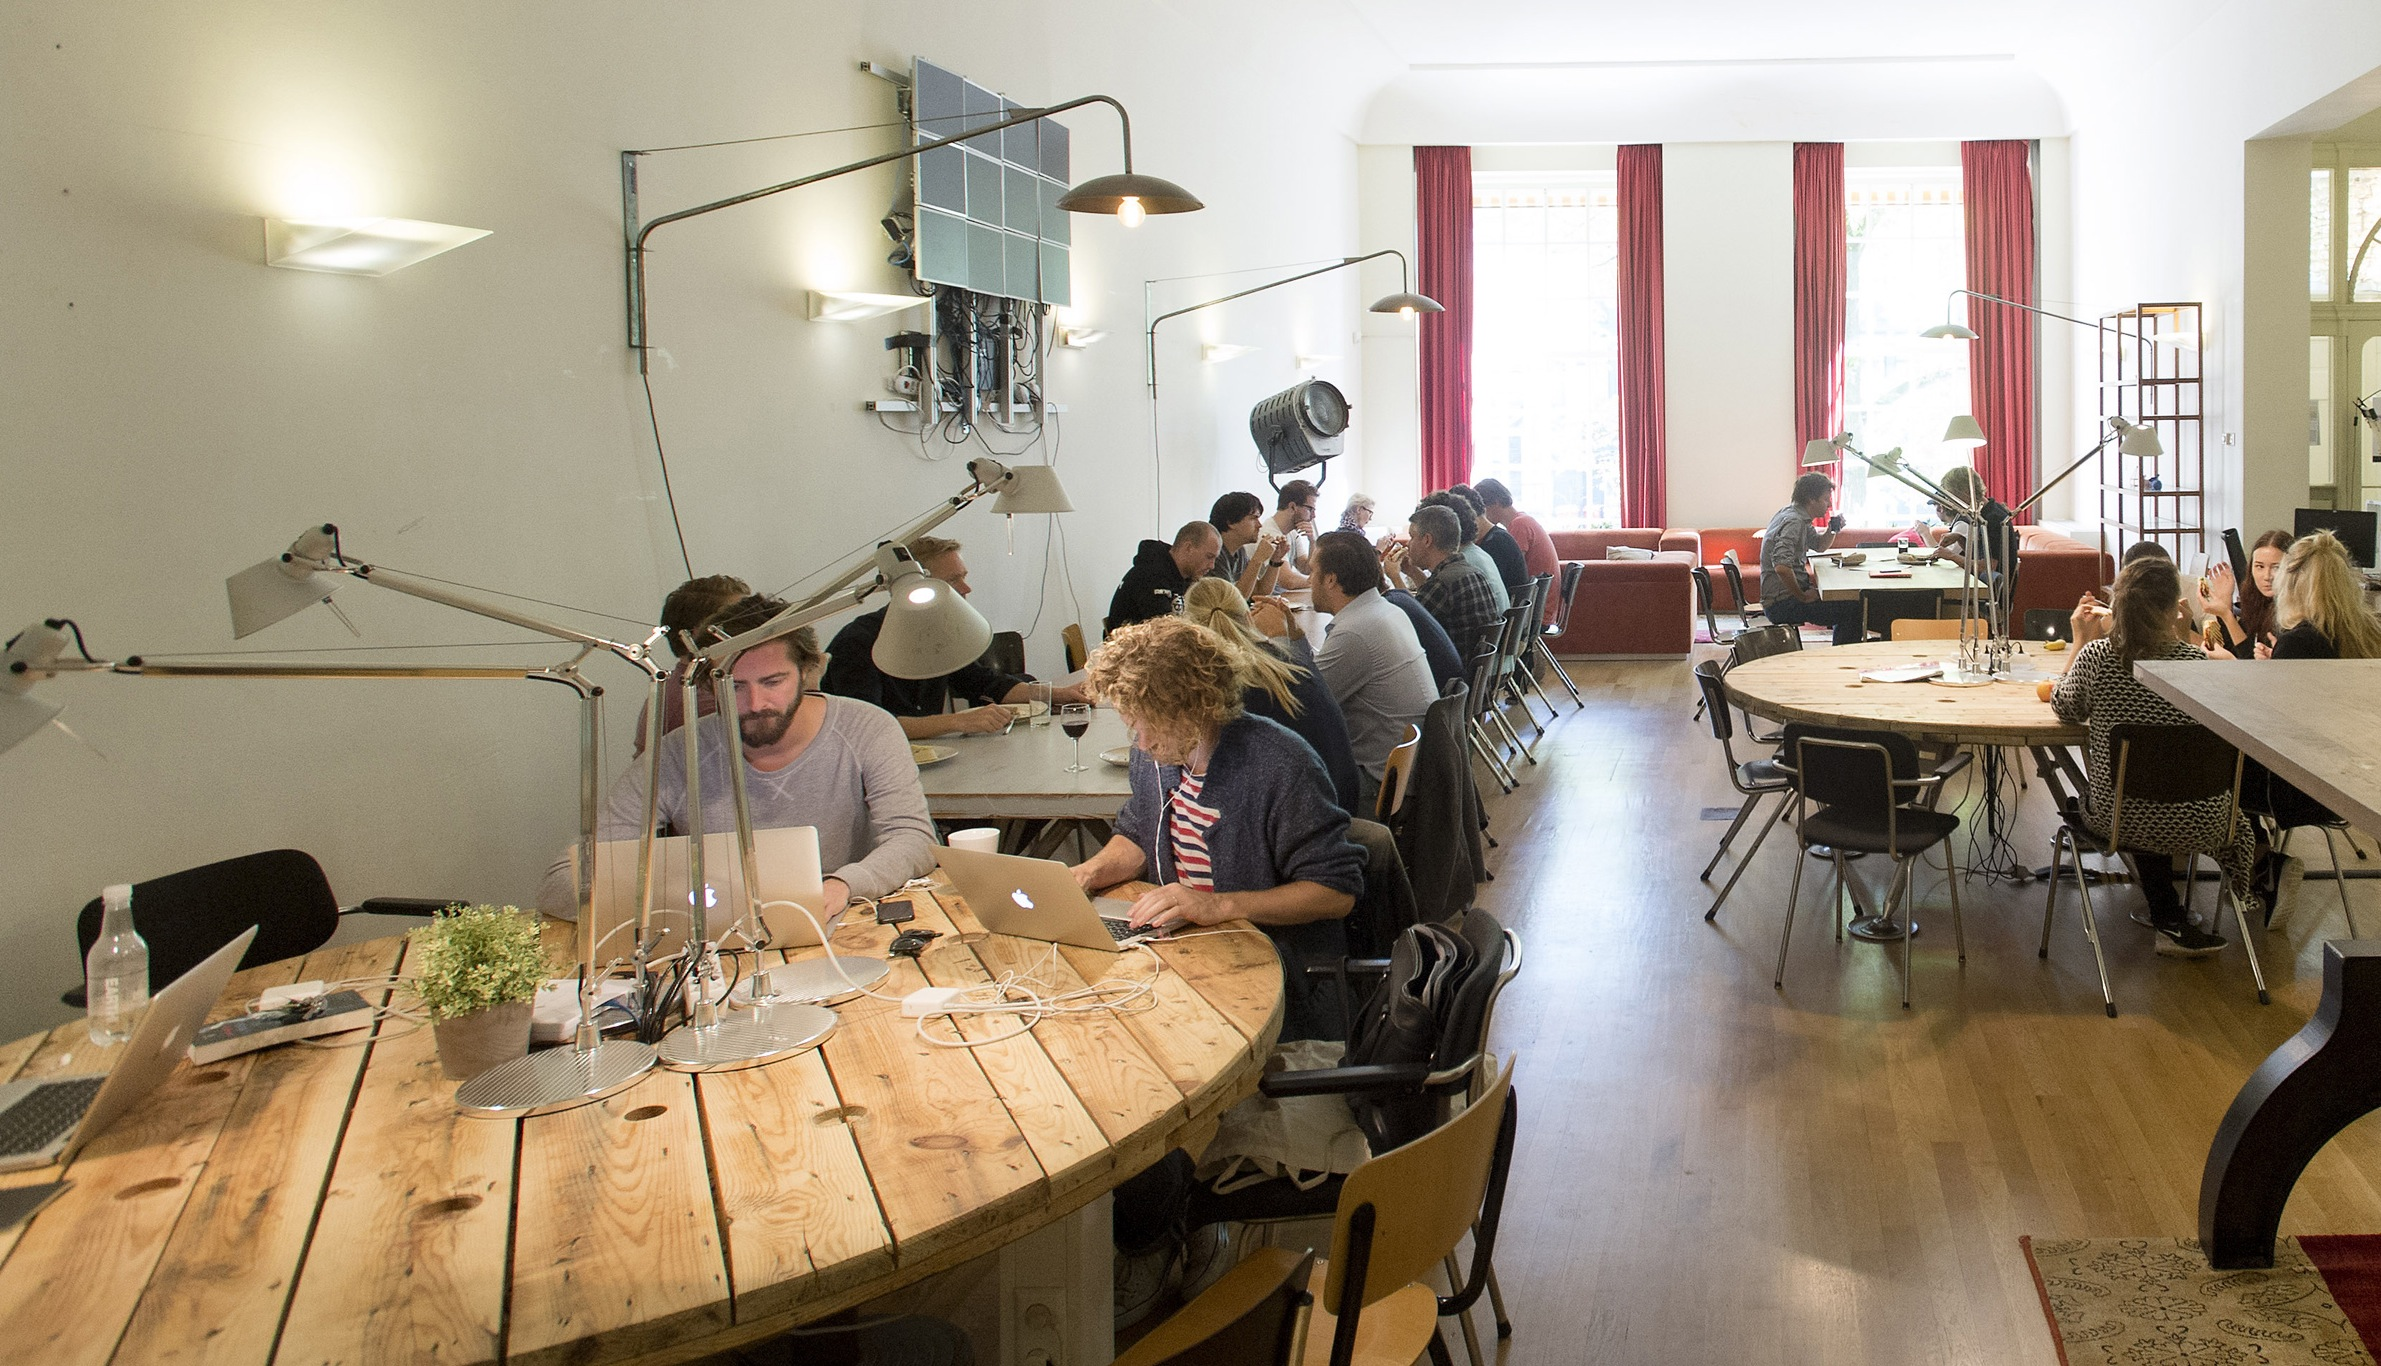 An interior view of the eating and meeting room in the 400-year-old former merchant bank building called De Zonnewijser, home to Rockstart Accelerator, a private bootcamp for tech firms, in Amsterdam September 2, 2014. Picture taken September 2, 2014.   To match Insight EUROPE-STARTUPS/INCUBATORS     REUTERS/Toussaint Kluiters/United Photos (NETHERLANDS - Tags: BUSINESS SCIENCE TECHNOLOGY) - RTR46EE1